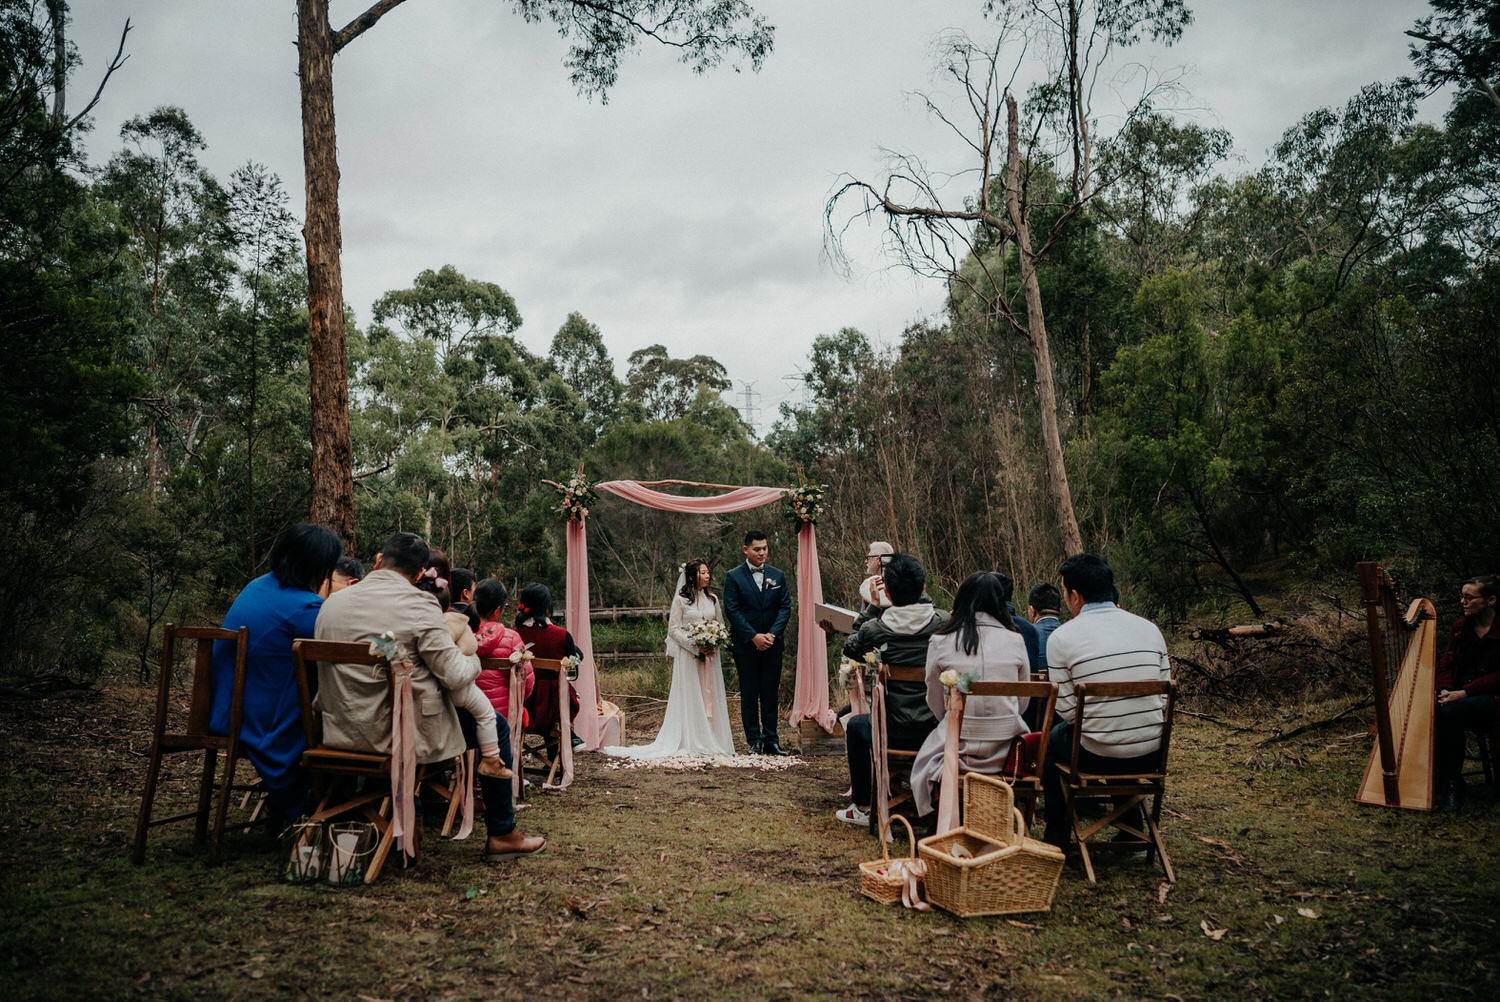 019-melbourne-wedding-bride-and-groom-andrew-hardy-ceremony.jpg